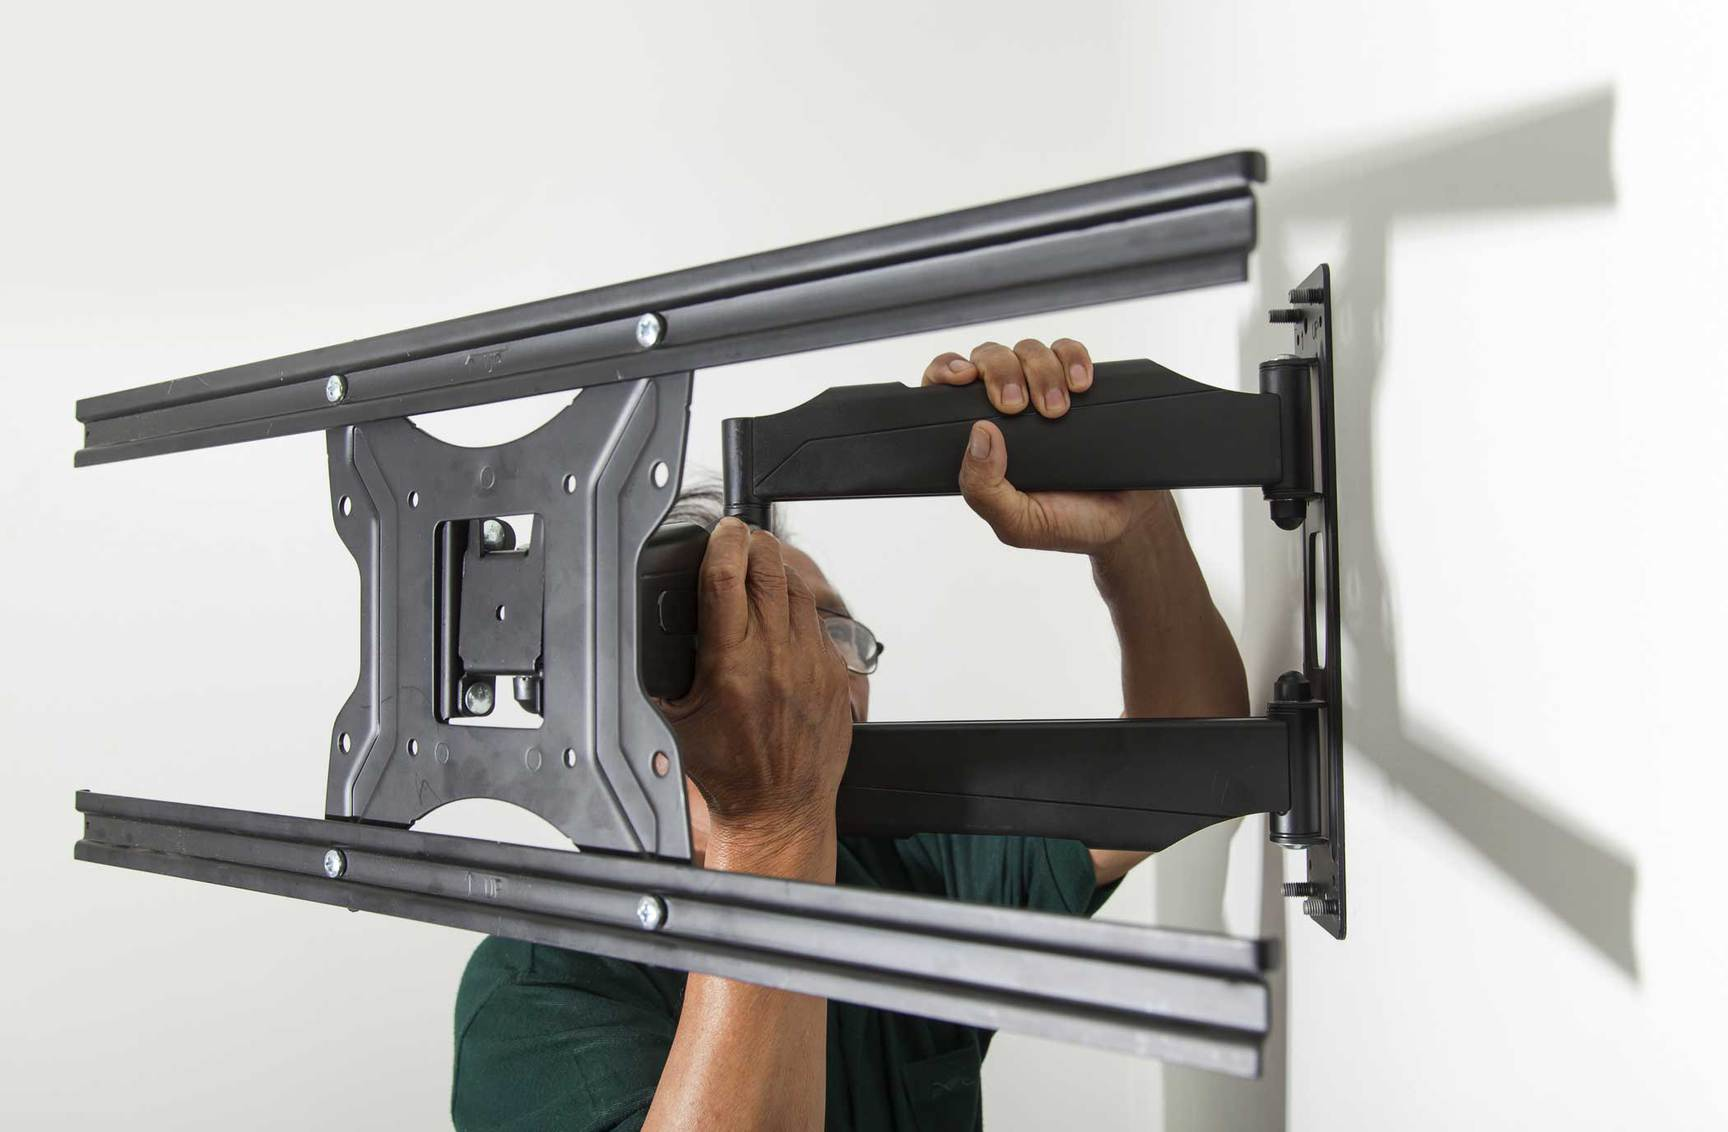 Top 3 TV Wall Mounts for 2019 Revealed – The Best TV Wall Mounts on the Market!